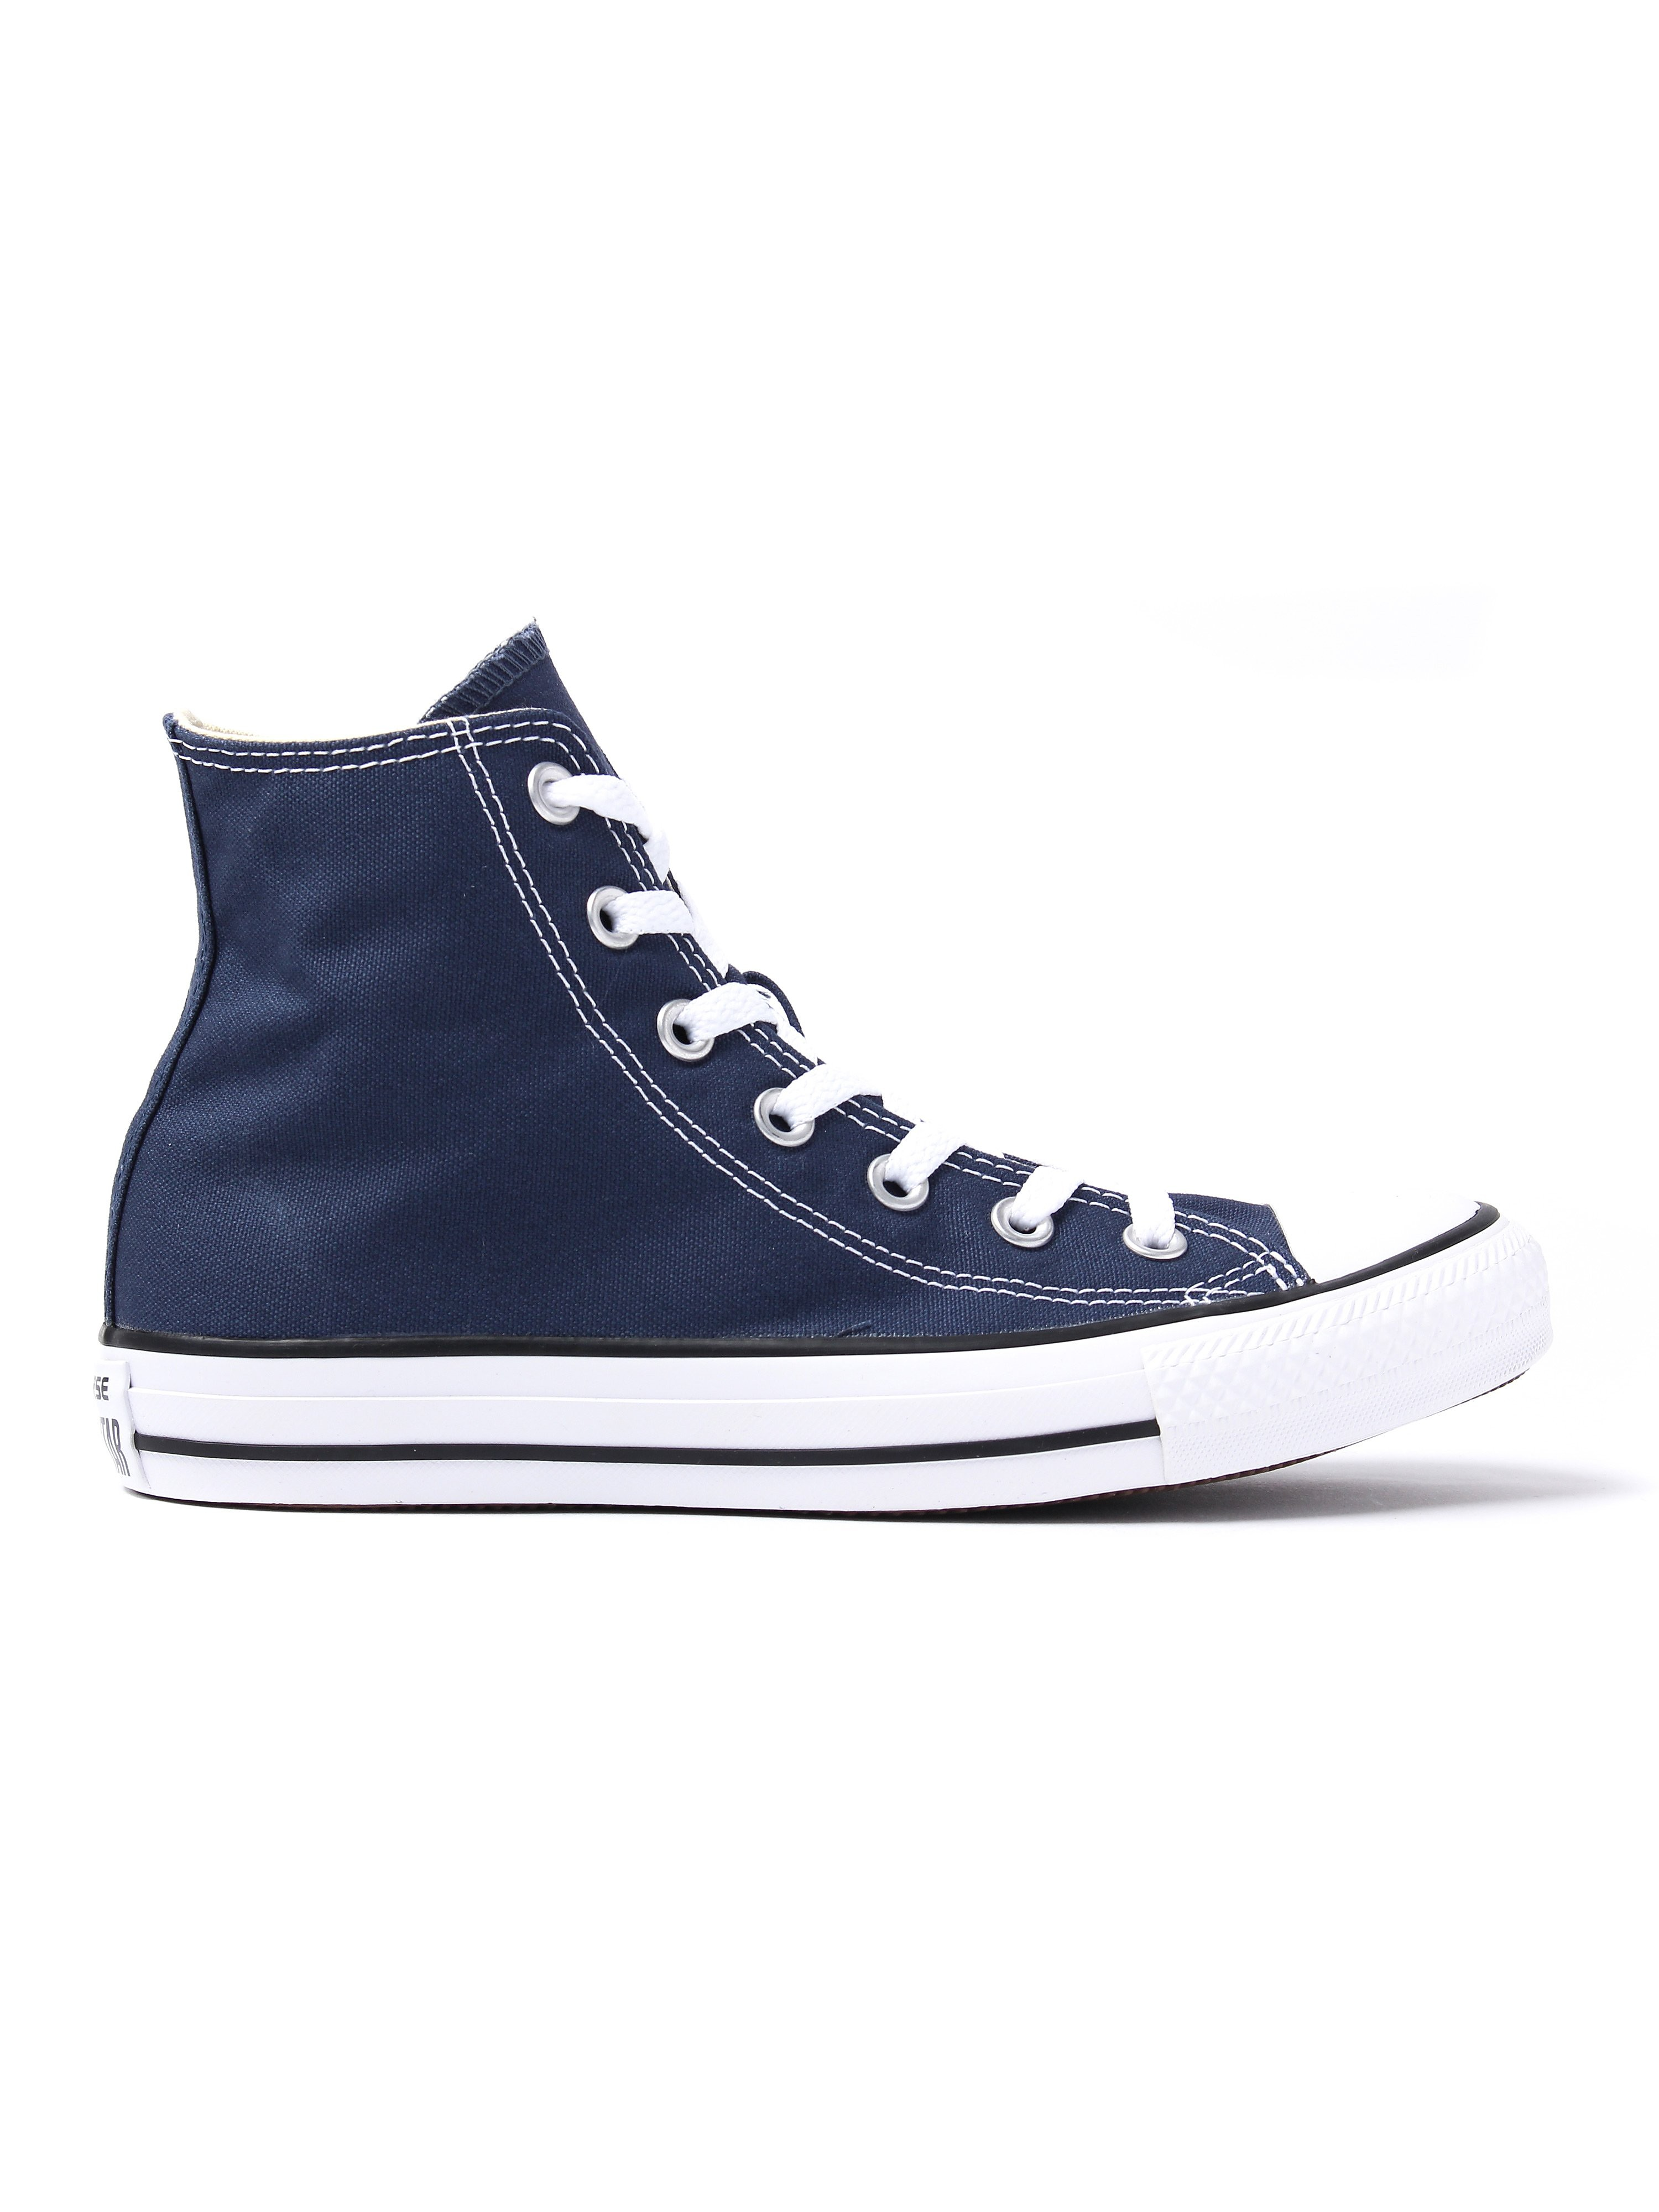 Converse Women's Chuck Taylor All Star HI Trainers - Navy